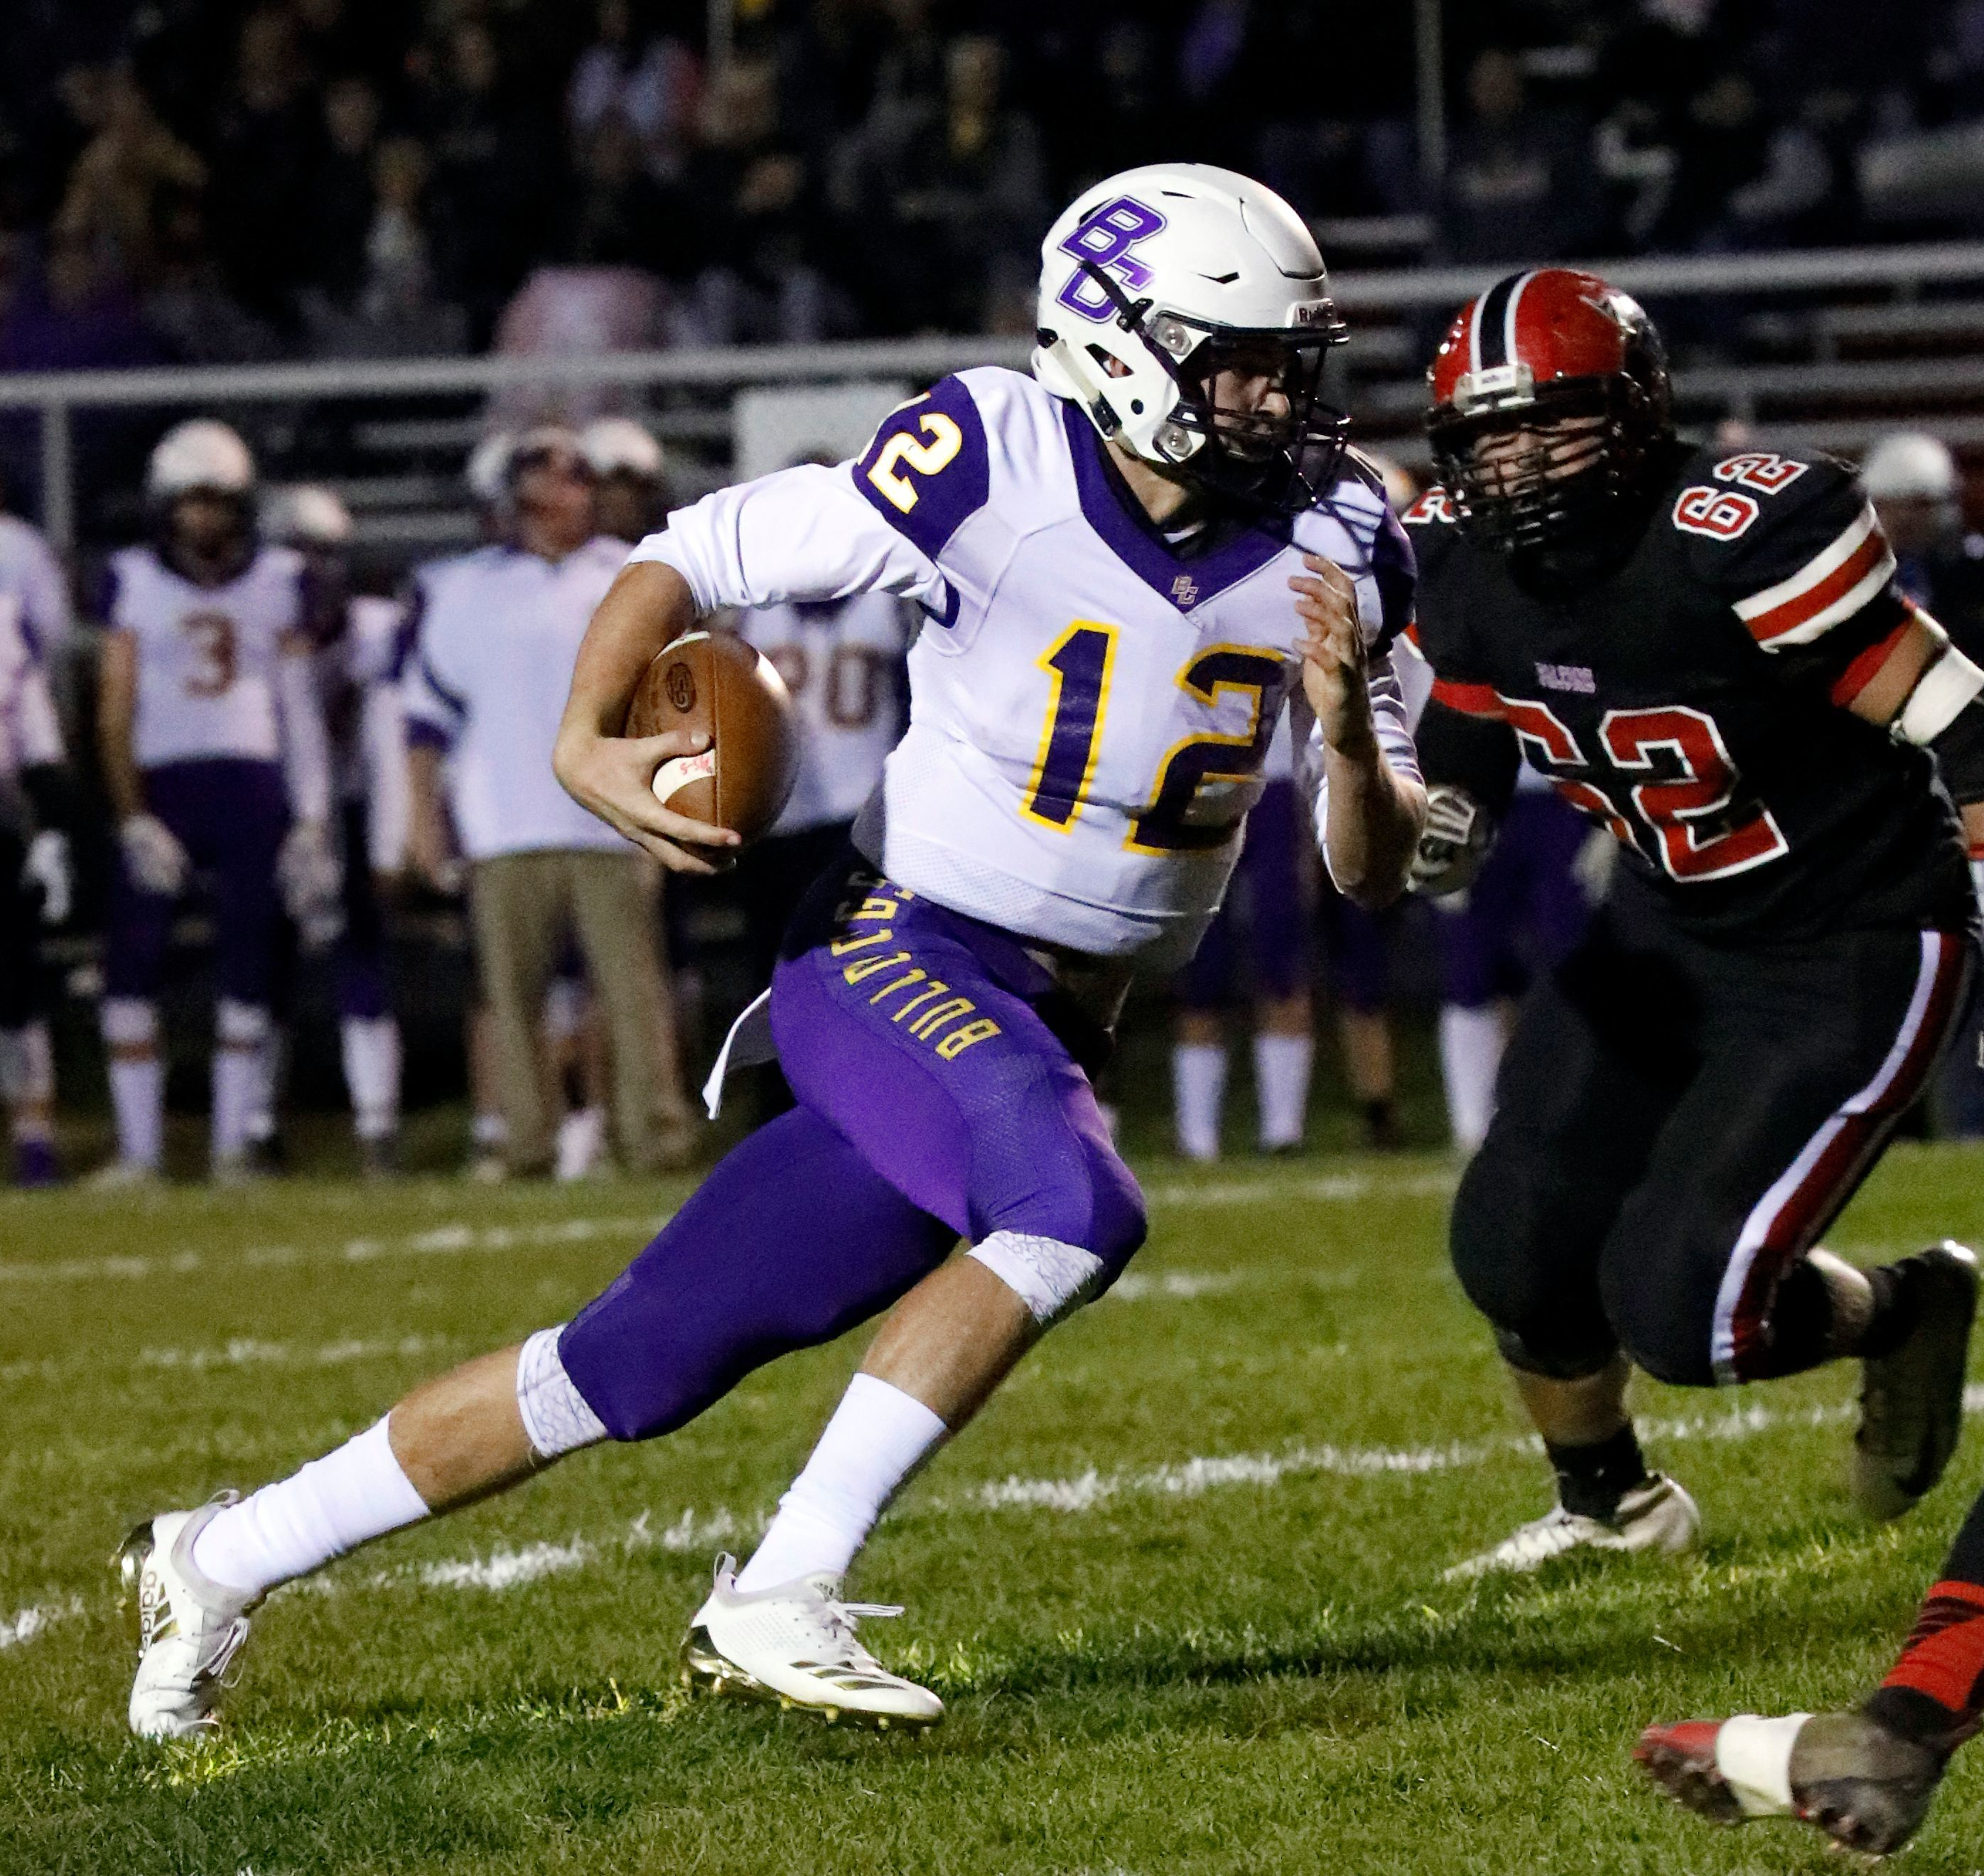 Bloom-Carroll senior quarterback Otto Kuhns has accounted for more than 5,000 yards of total offense the last two seasons while leading the Bulldogs to a league title and back-to-back playoff berths.